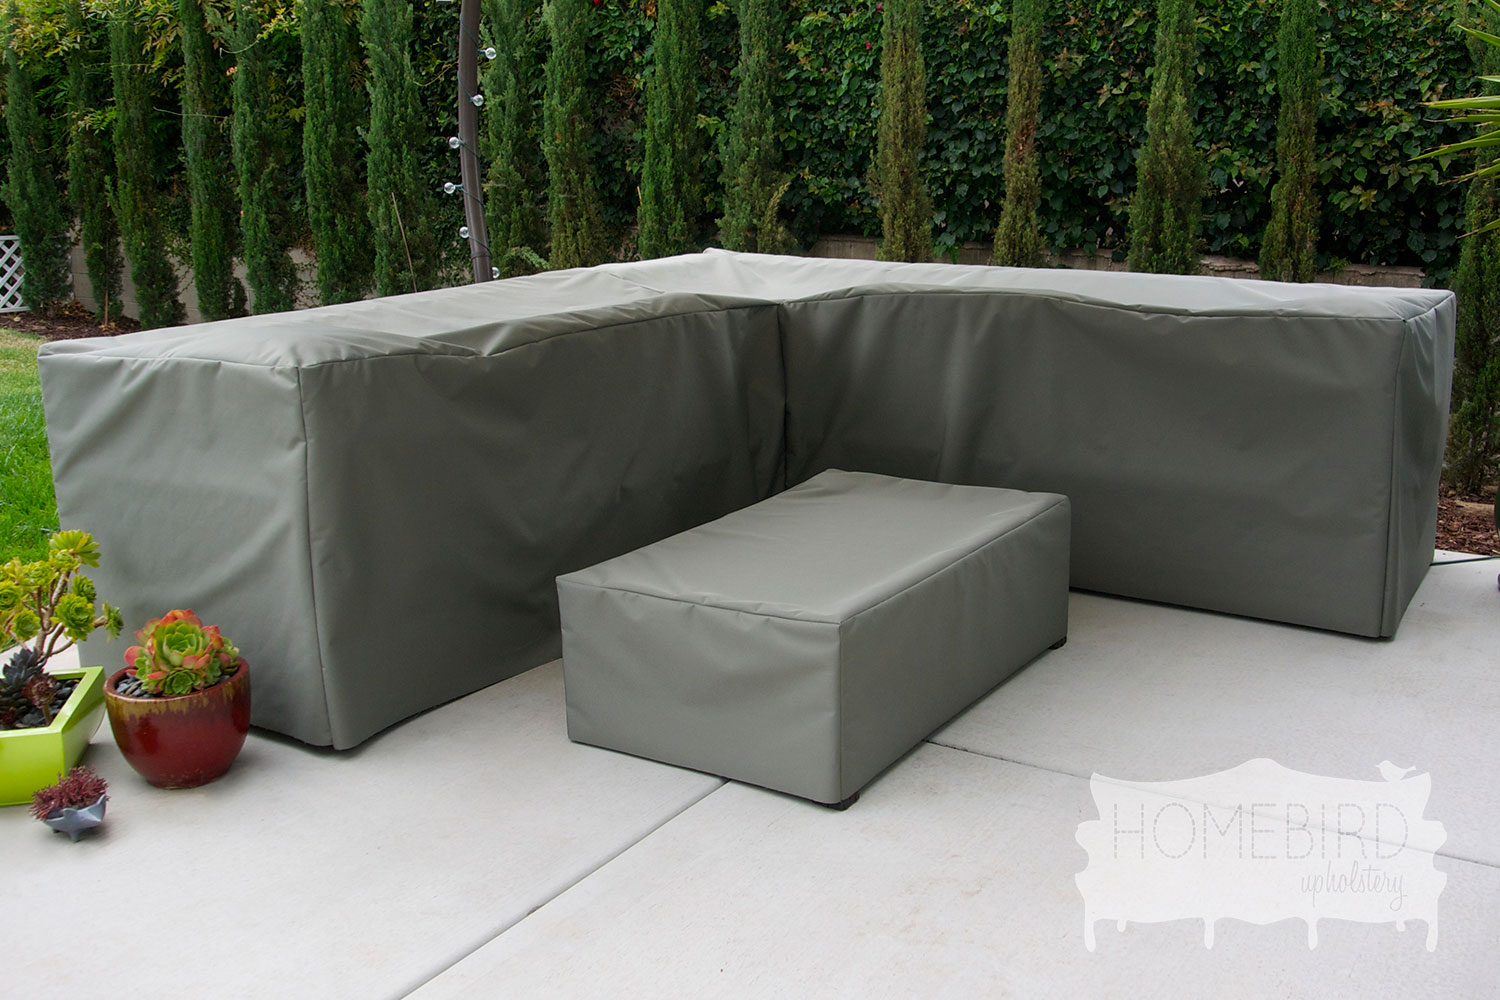 Custom Patio Furniture Covers And Outdoor Furniture Covers